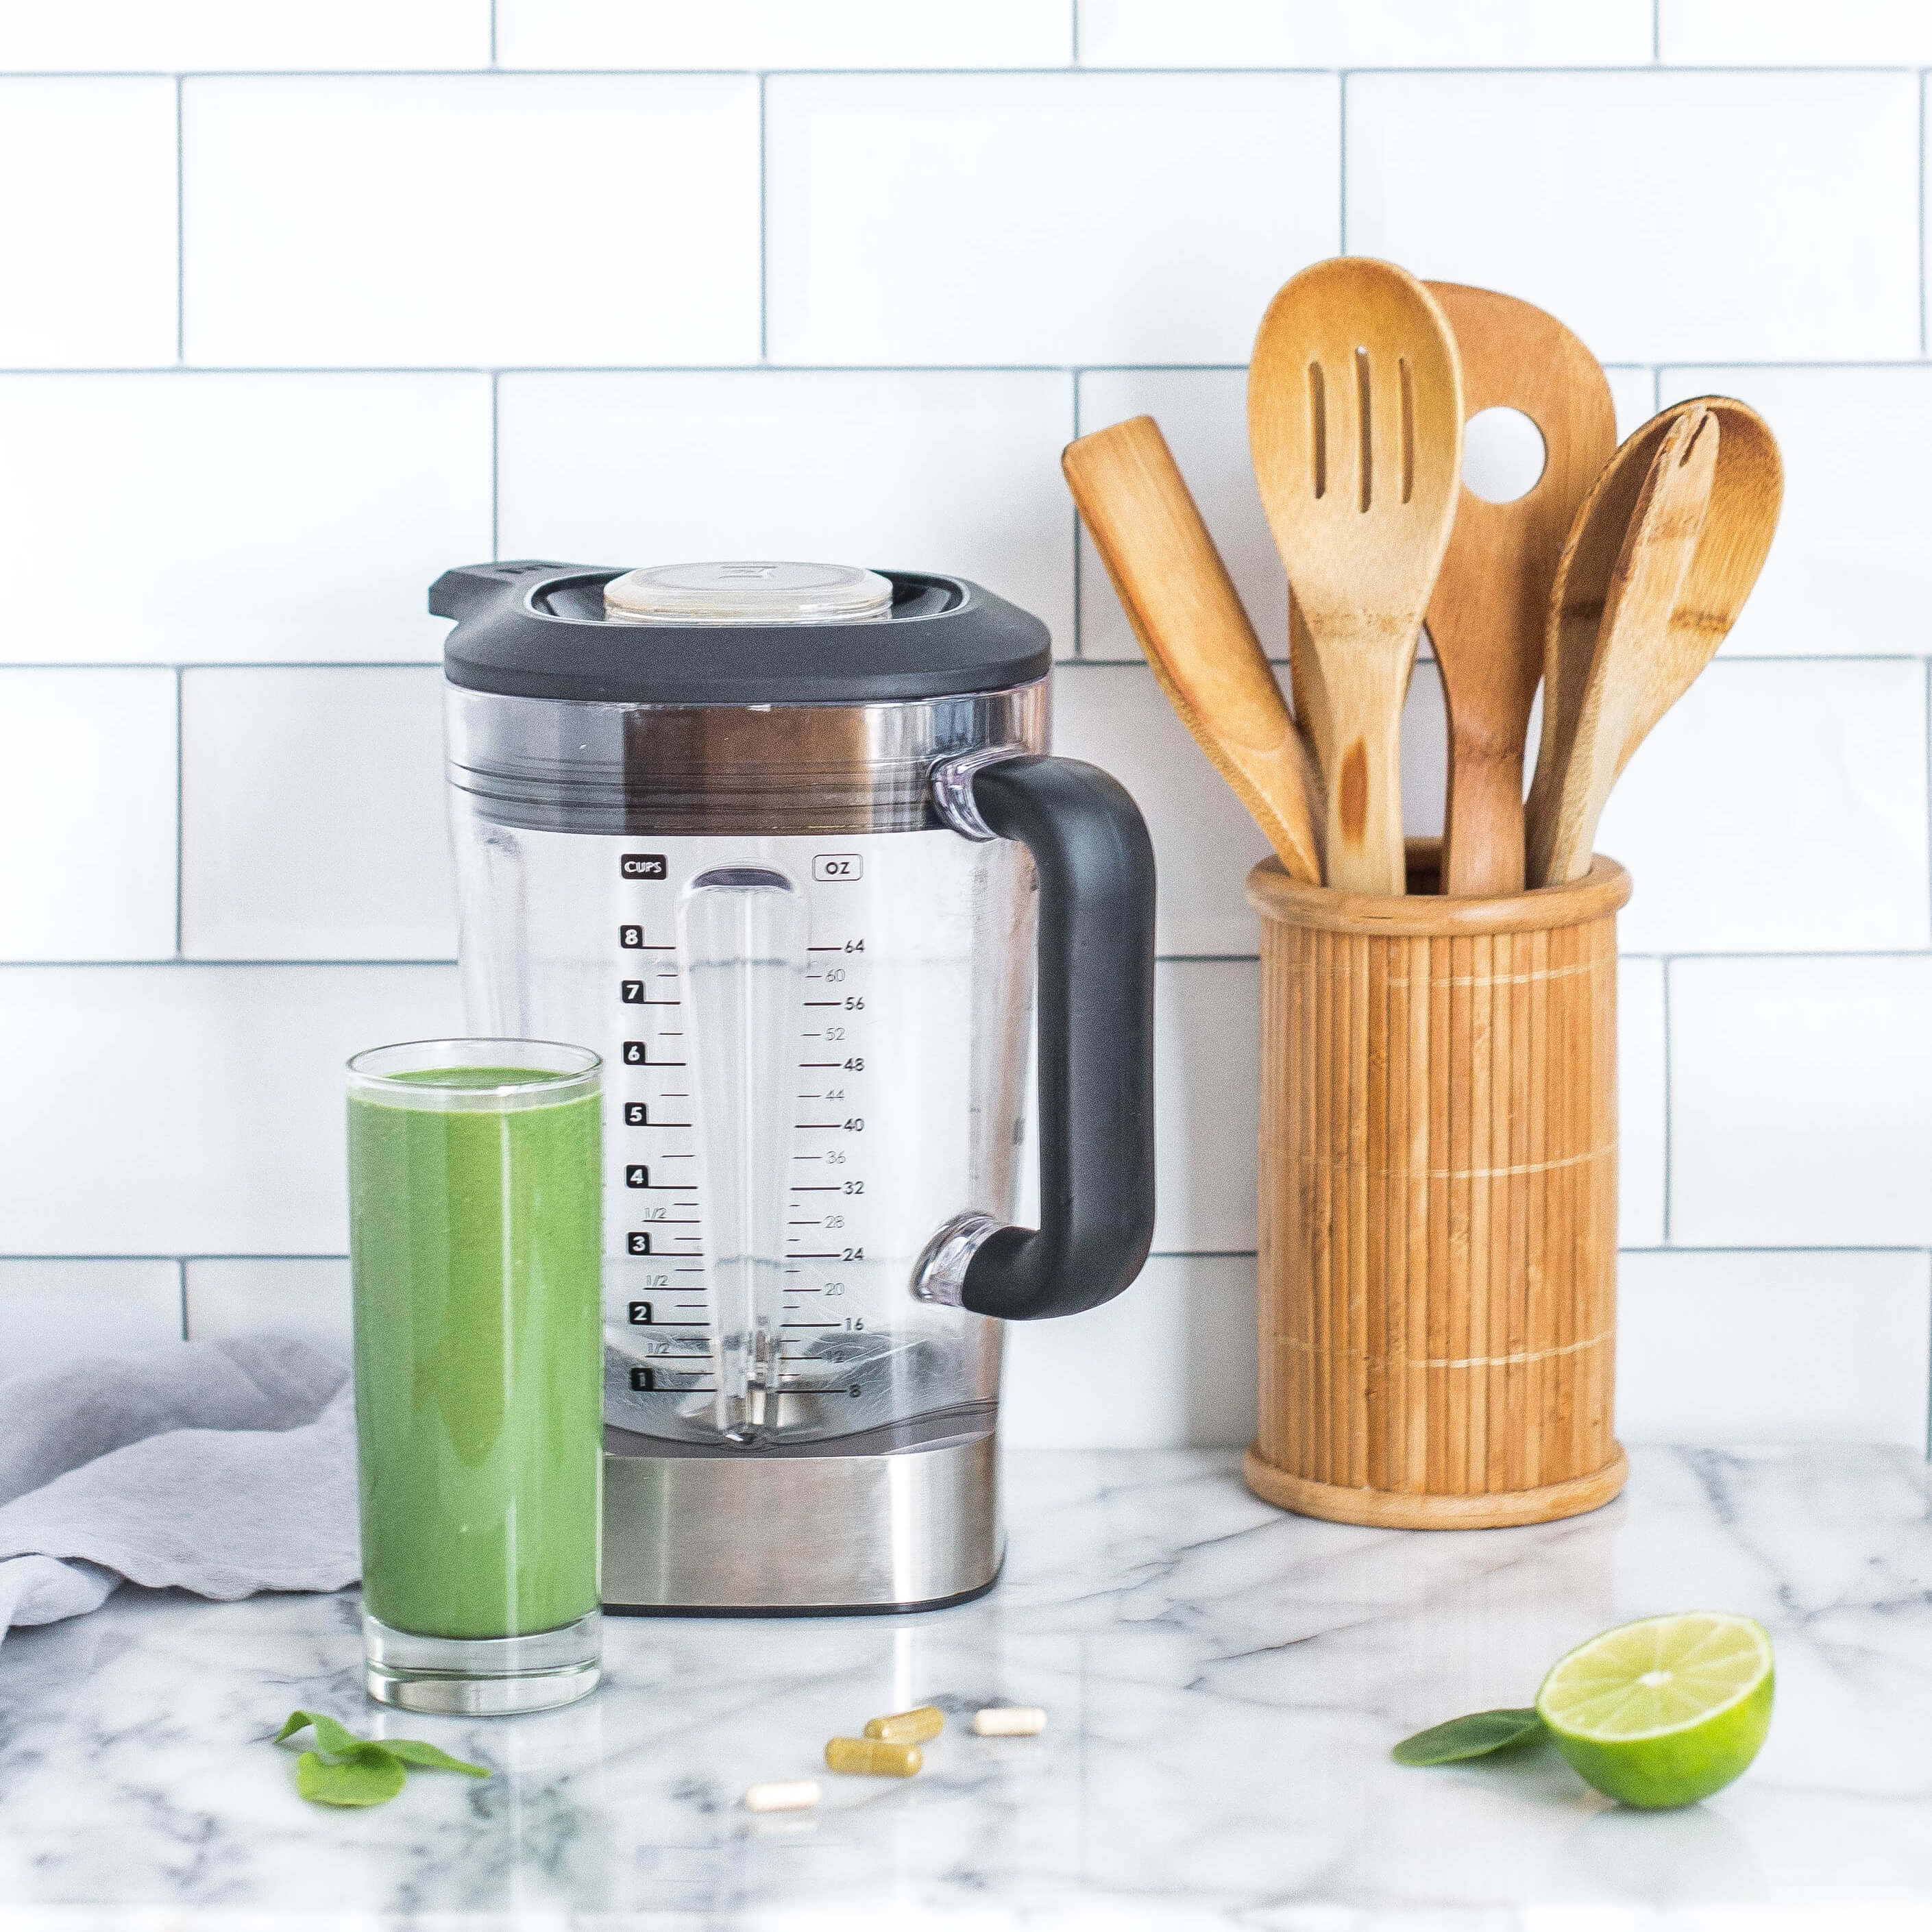 Mediating expertise project on nutrition. Photo: A blender, a smoothie and spoons.